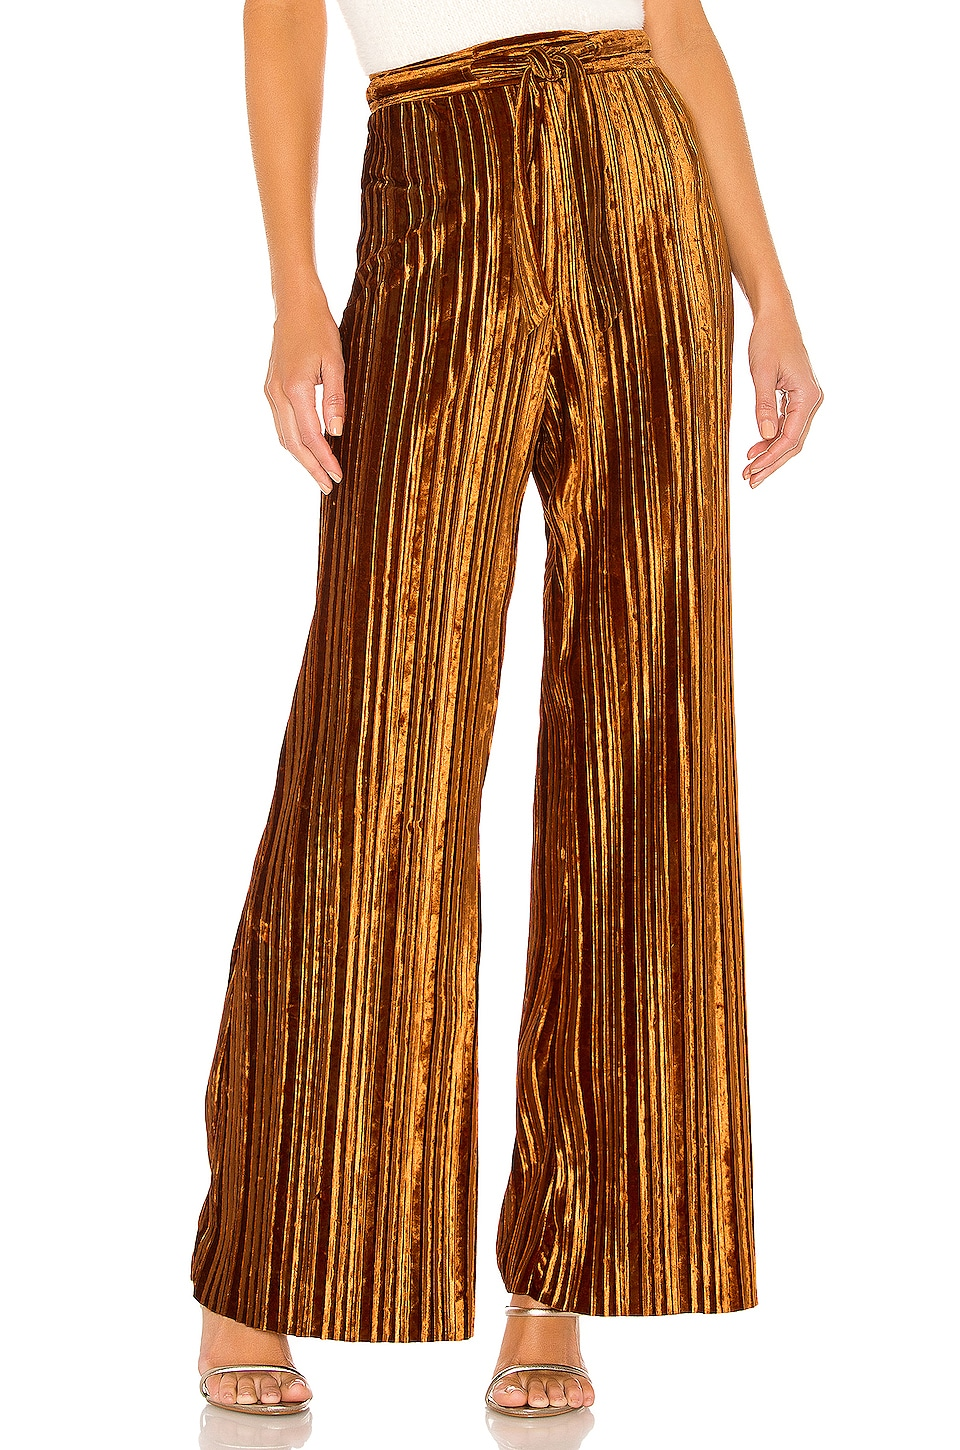 House of Harlow 1960 x REVOLVE Lucy Pant in Rust Red